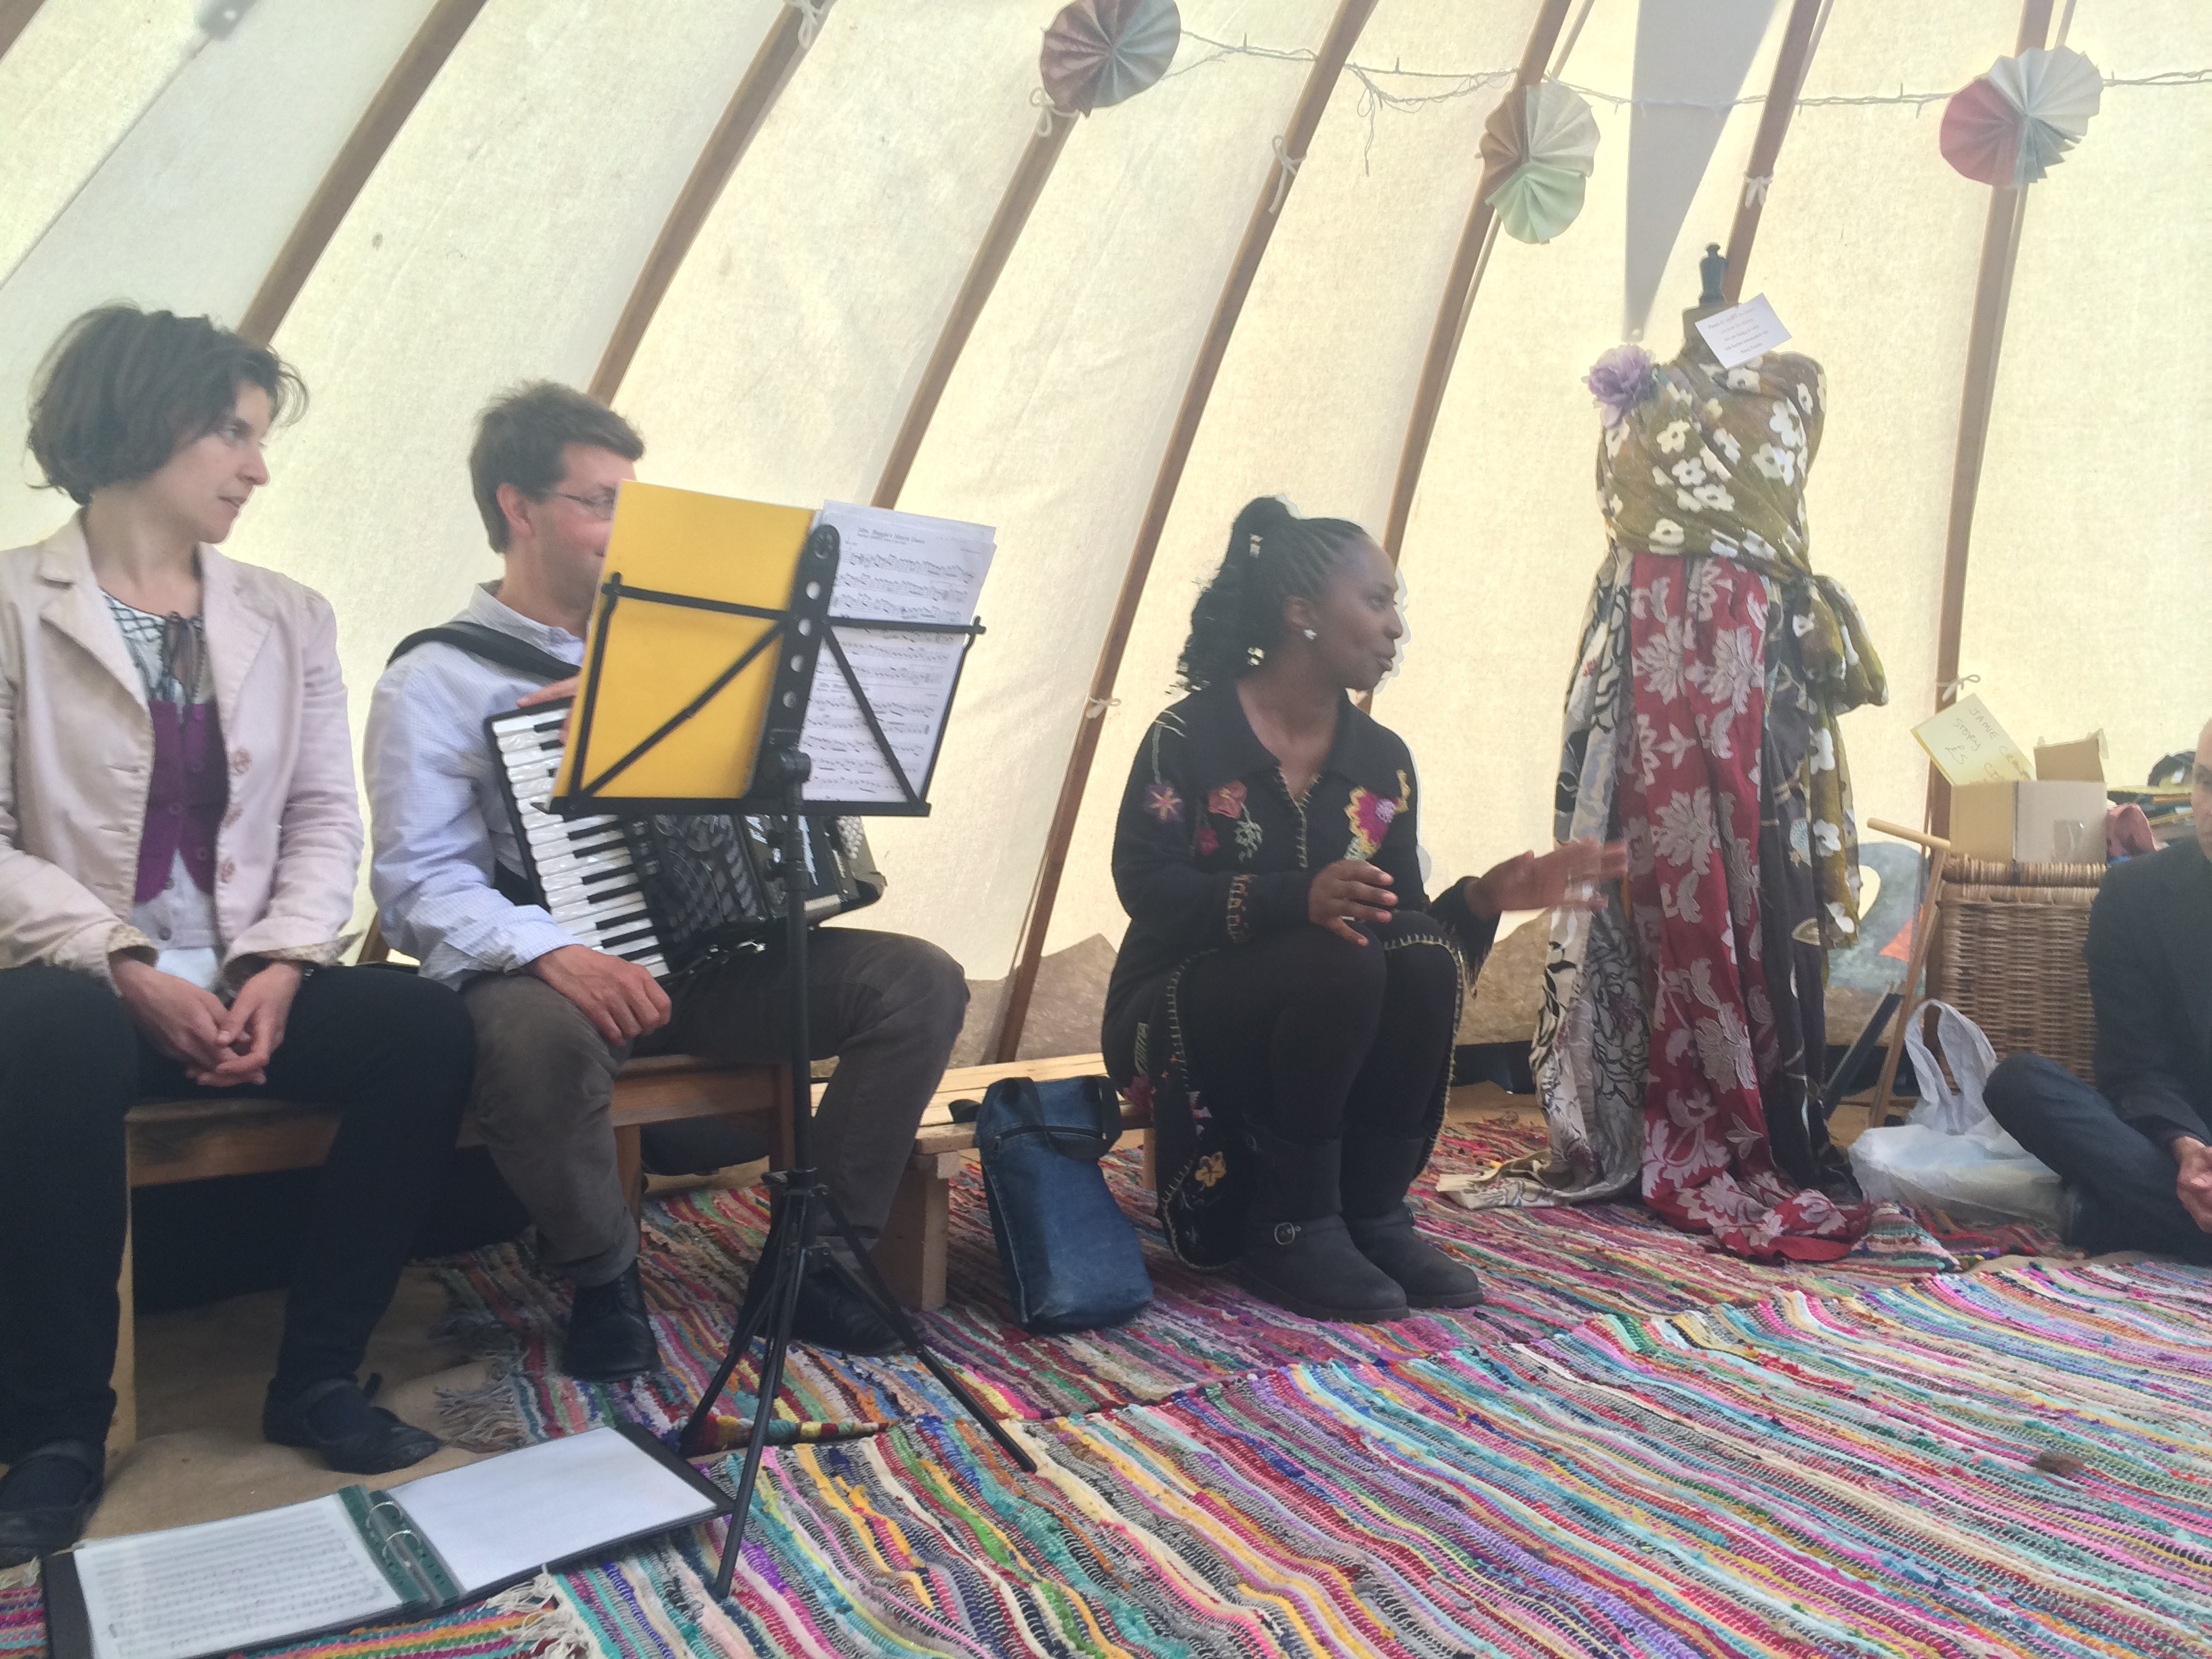 Wendy Shearer, from Story Boat, Storytelling in Tooting Bec Festival, May 2015